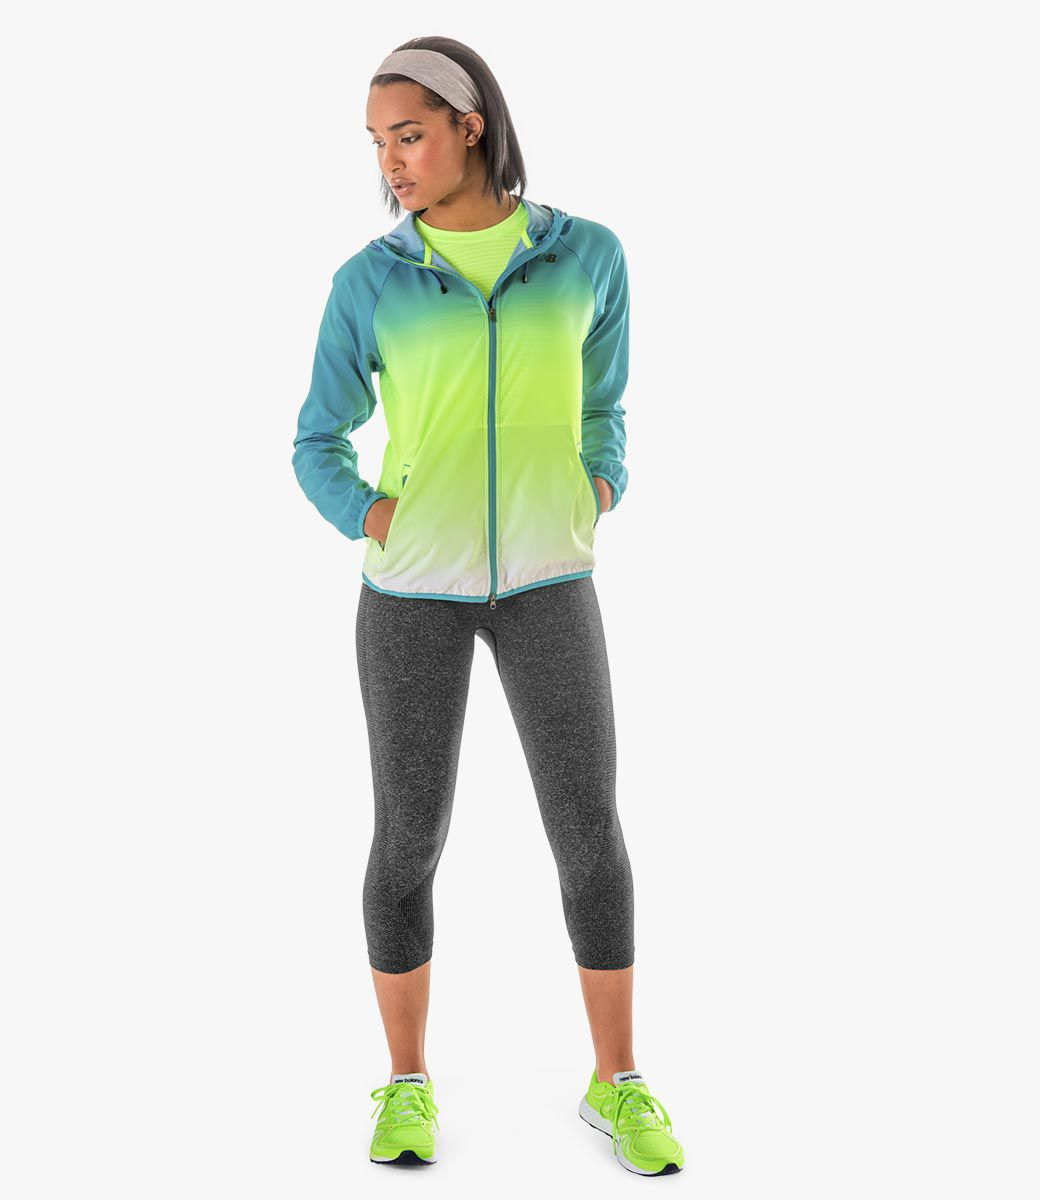 New Balance Womens 822 and M4M Seamless Apparel,